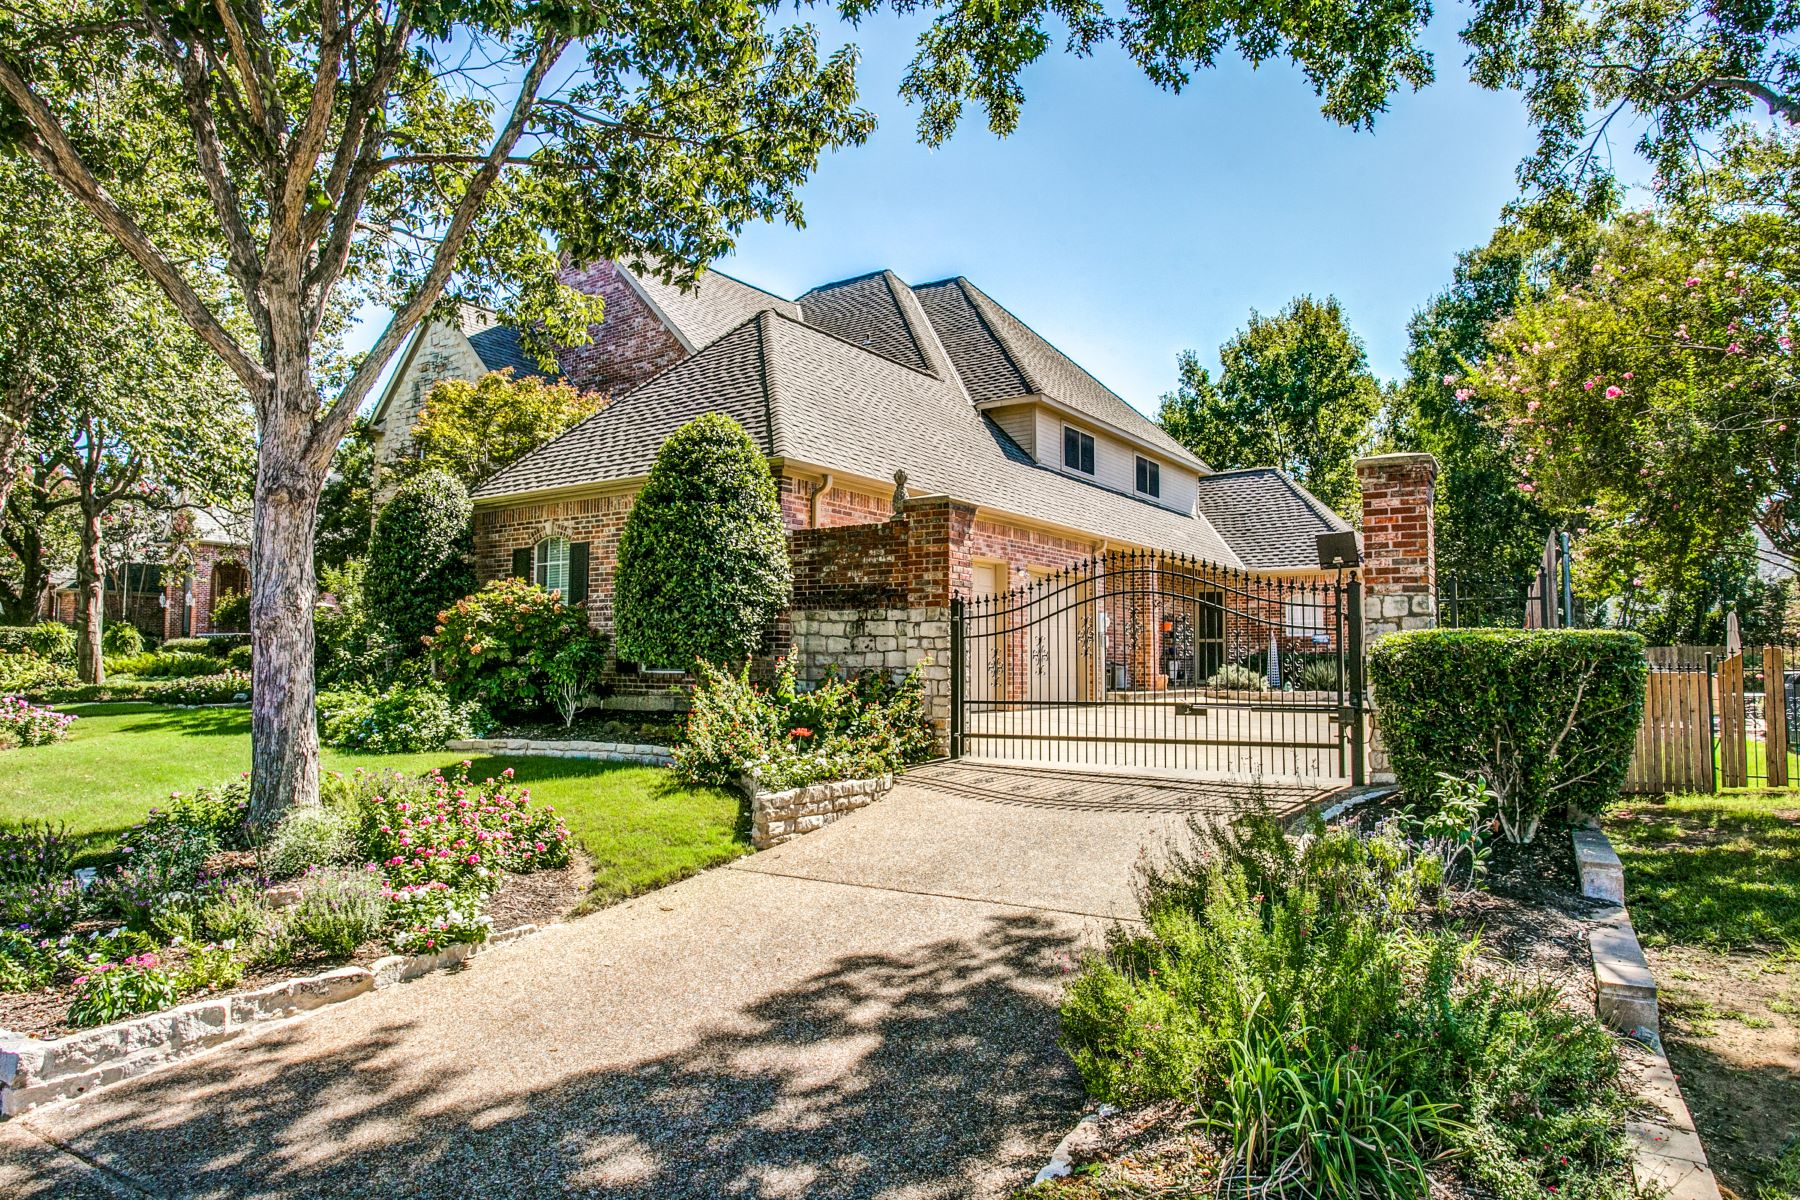 Single Family Homes for Sale at Beautiful Custom Built Home in Prestigious Ashmore Estates 2901 Edgewood Lane Colleyville, Texas 76034 United States